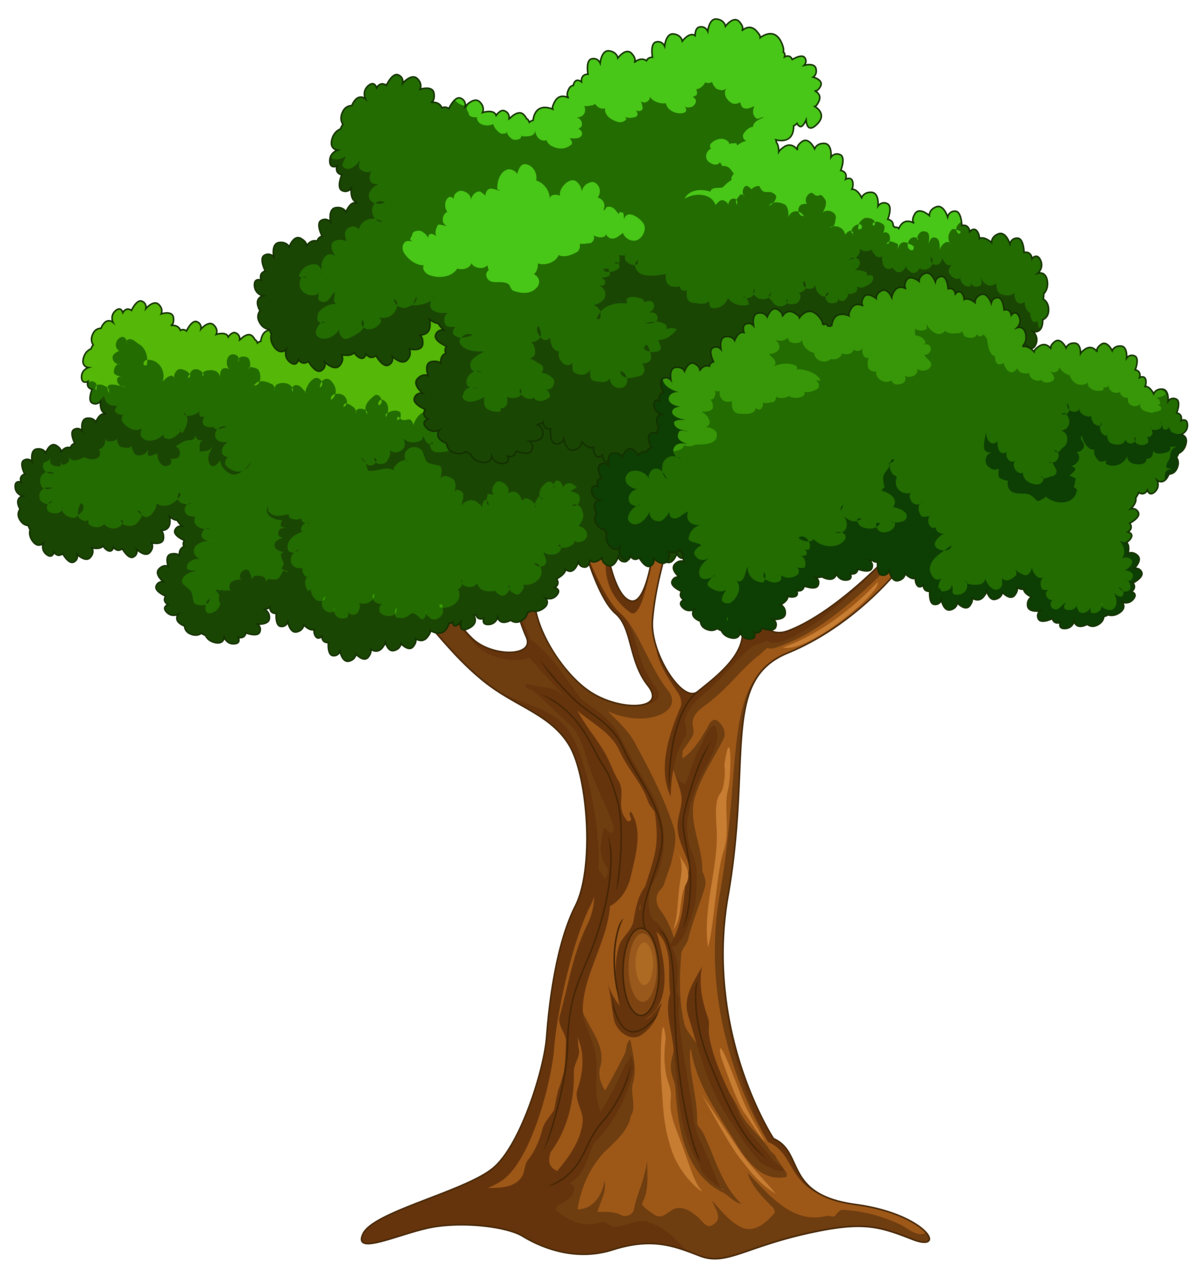 30 Tree cliparts png format for free download on Saurabh.